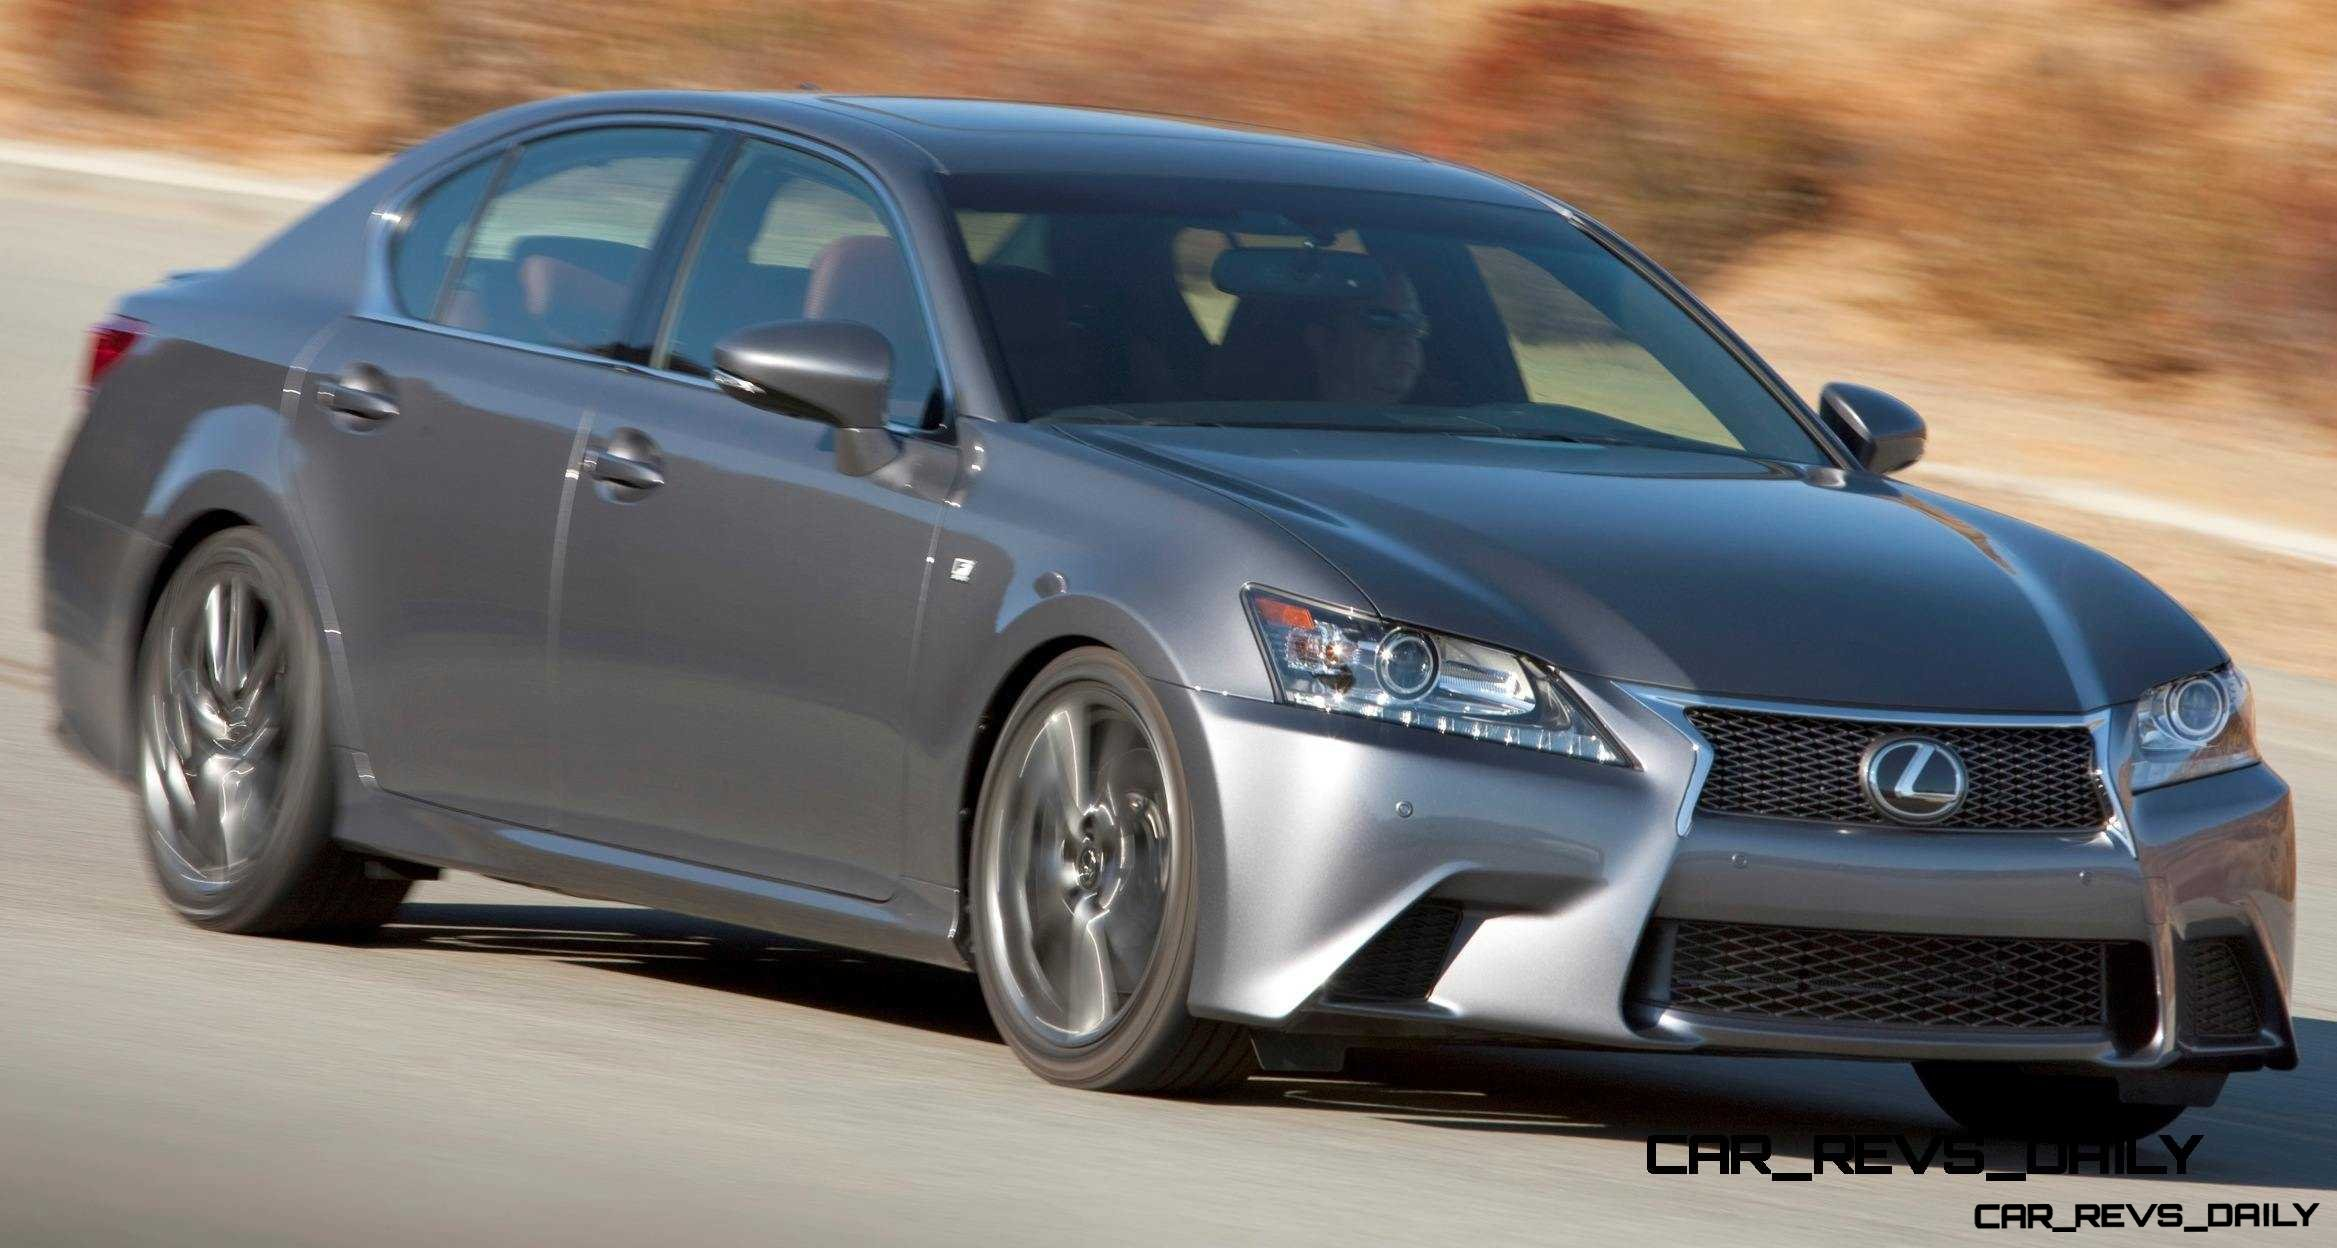 2014 lexus gs350 and gs f sport buyers guide info 32. Black Bedroom Furniture Sets. Home Design Ideas